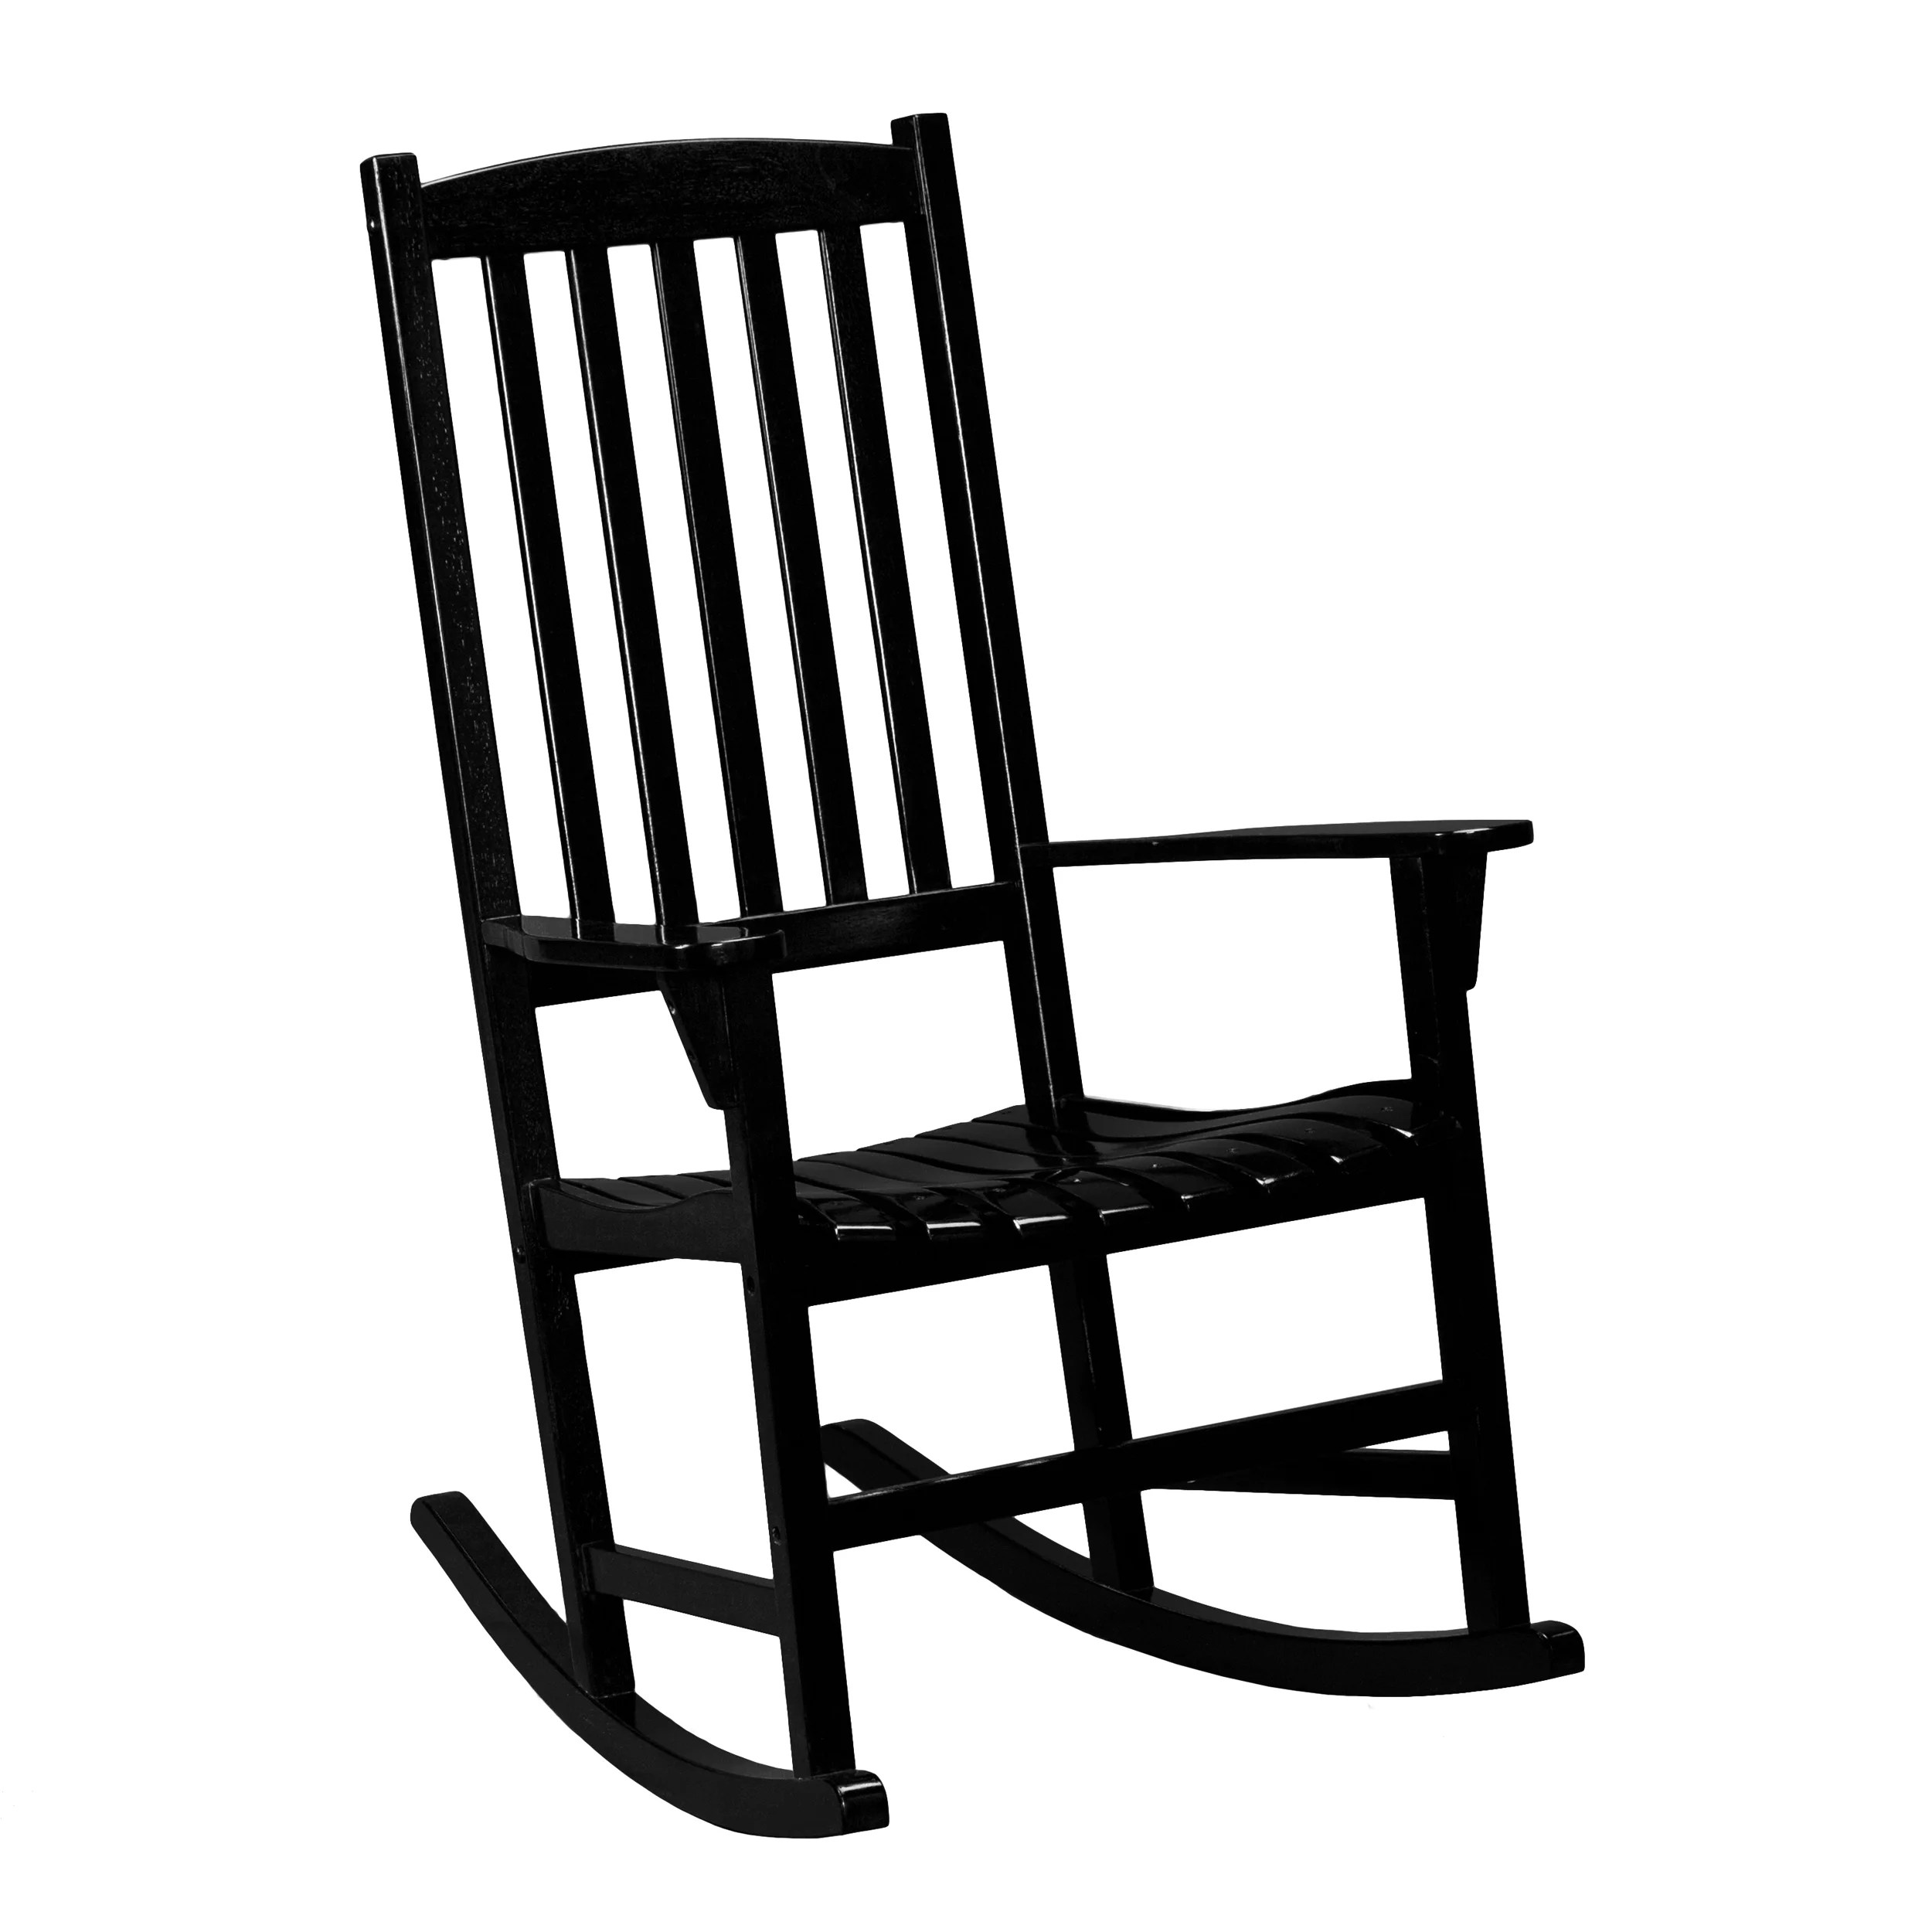 cracker barrel rocking chair reviews modern wingback chairs for sale wildon home  autumn porch rocker and wayfair